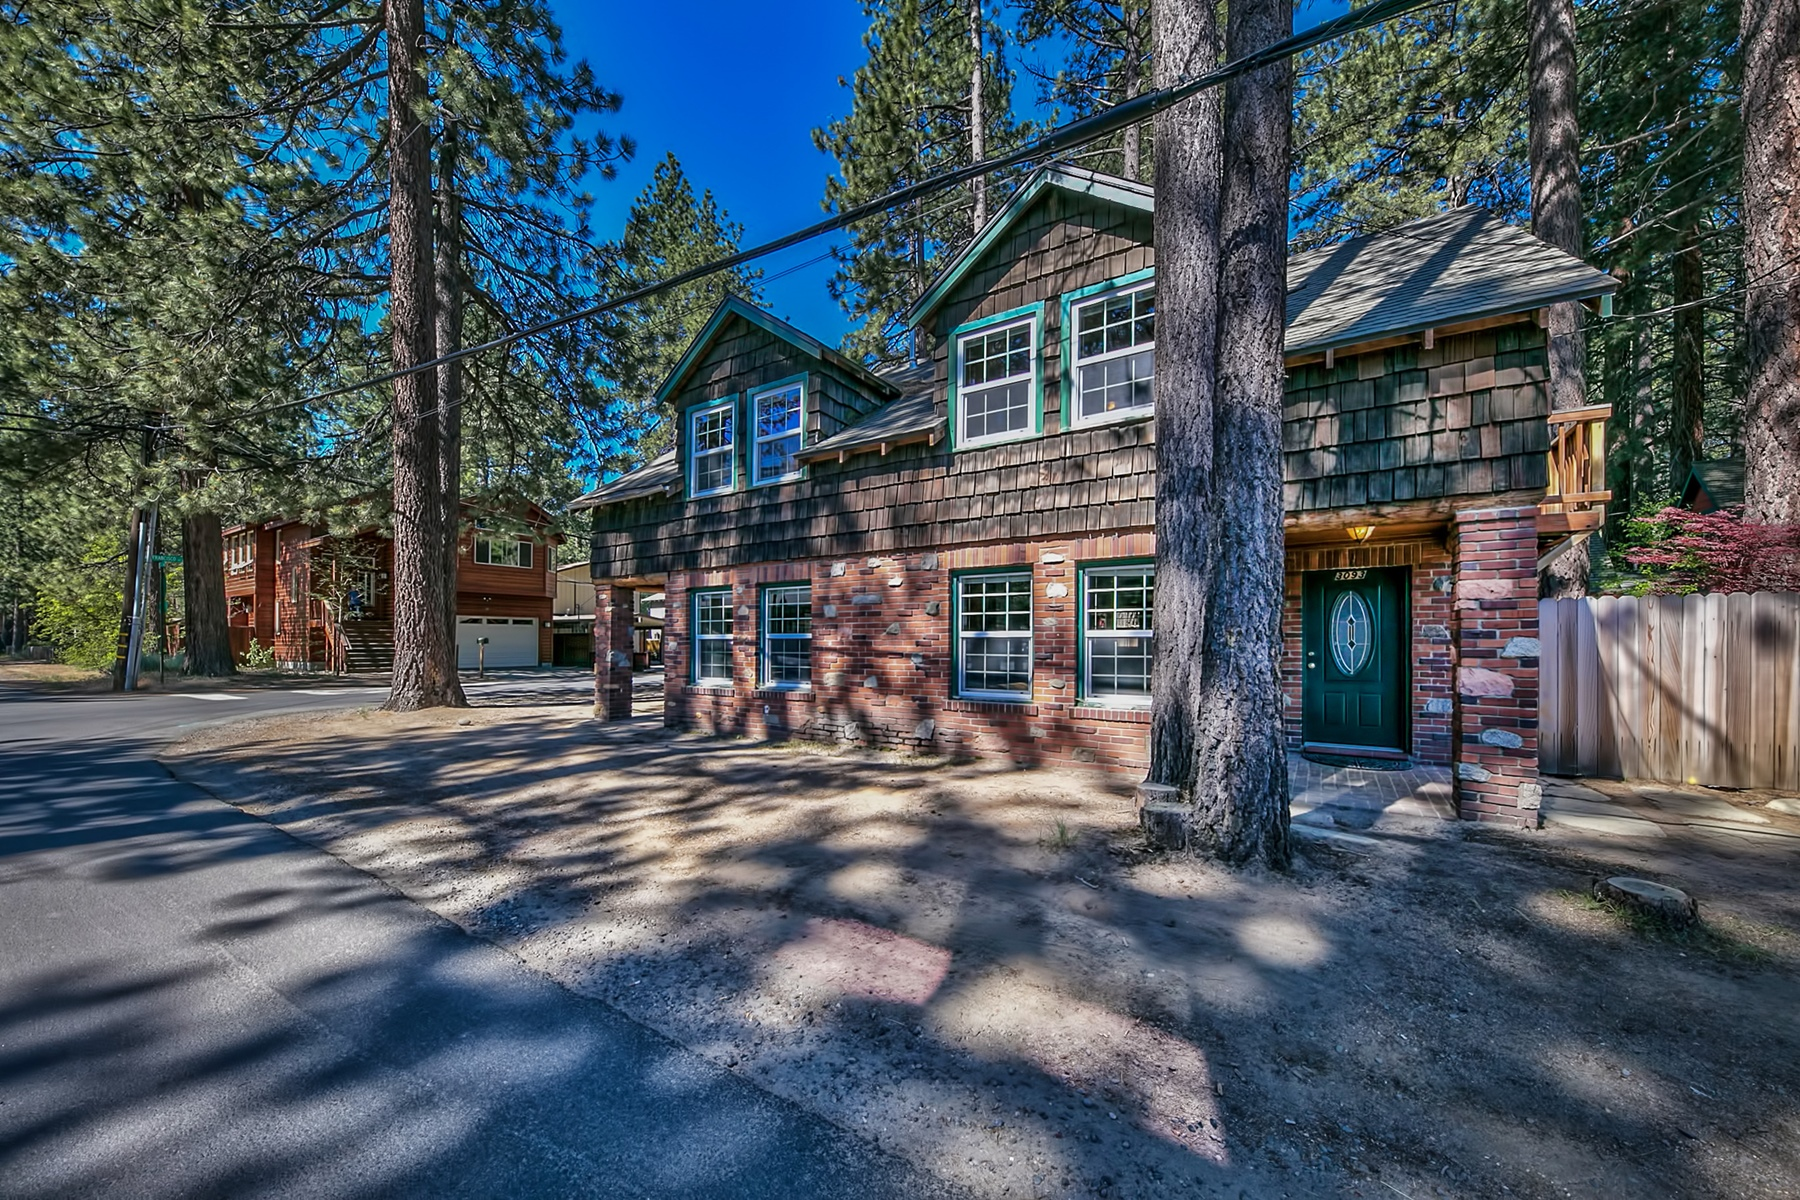 Casa Unifamiliar por un Venta en 3093 Riverside Avenue, South Lake Tahoe, CA South Lake Tahoe, California, 96150 Lake Tahoe, Estados Unidos